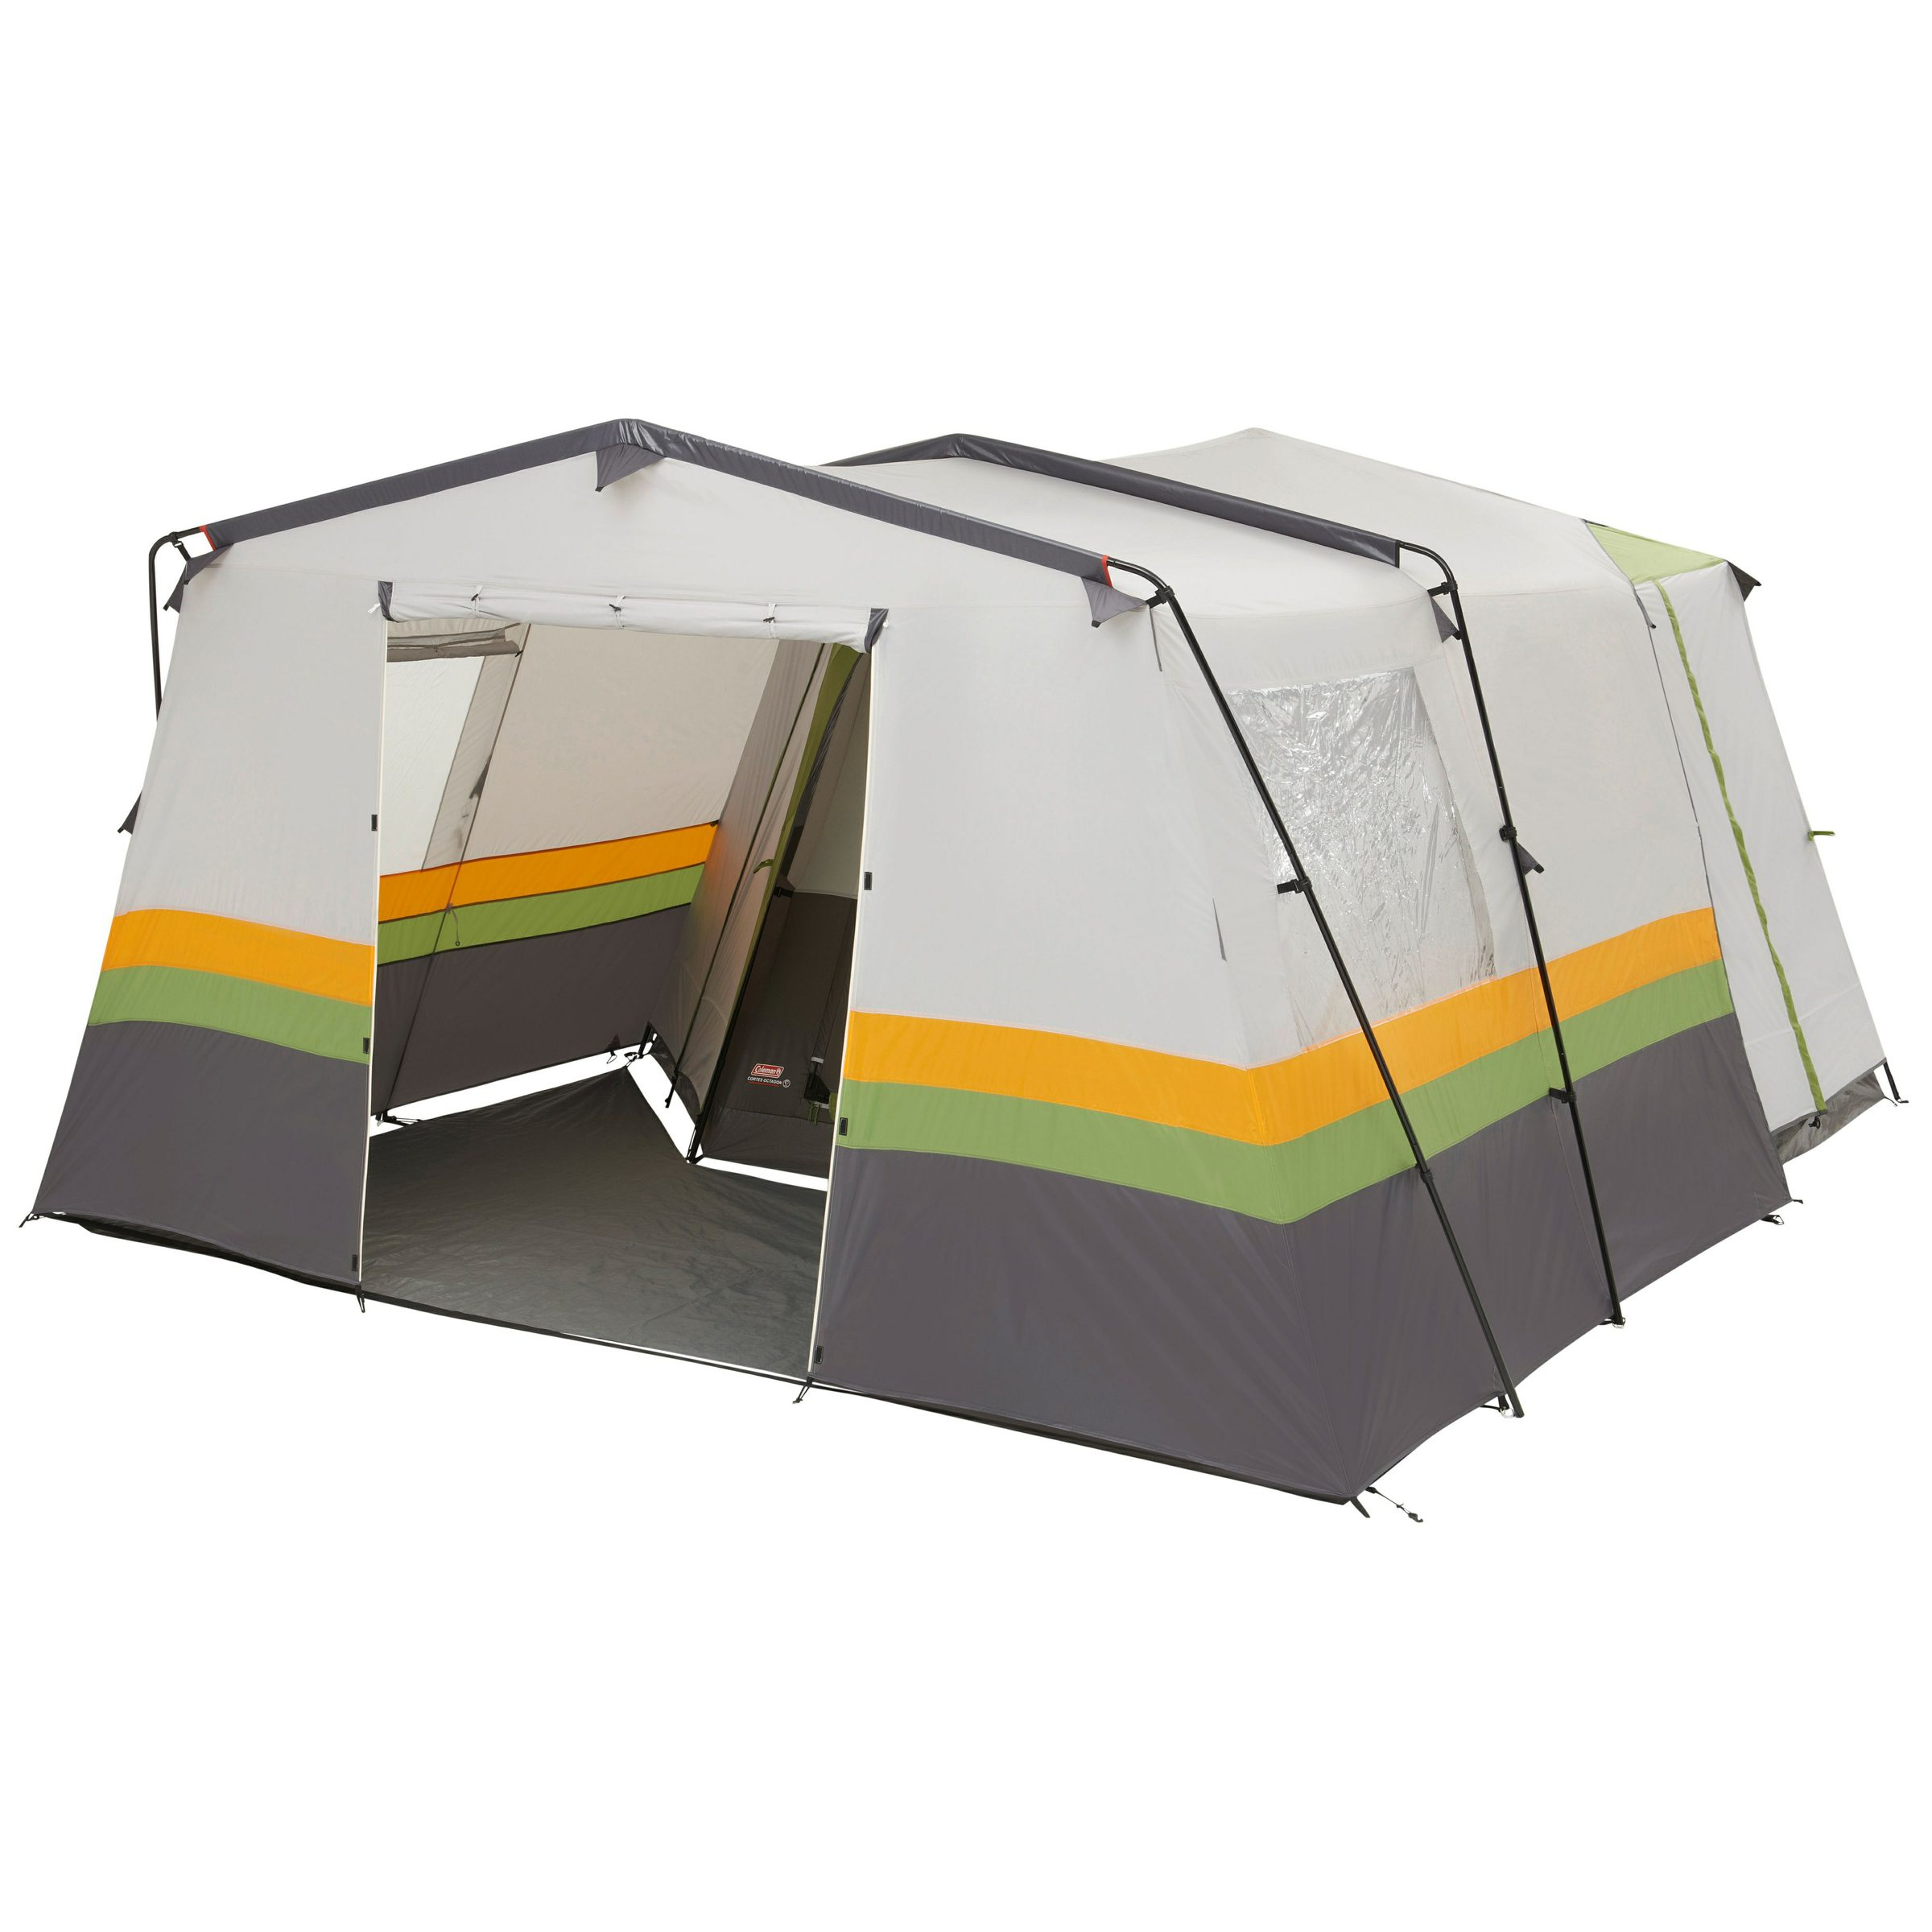 https://www.norwichcamping.co.uk/media/shapes/original/xxx-large/5000/5557/coleman-octagon-8-canopy.jpg